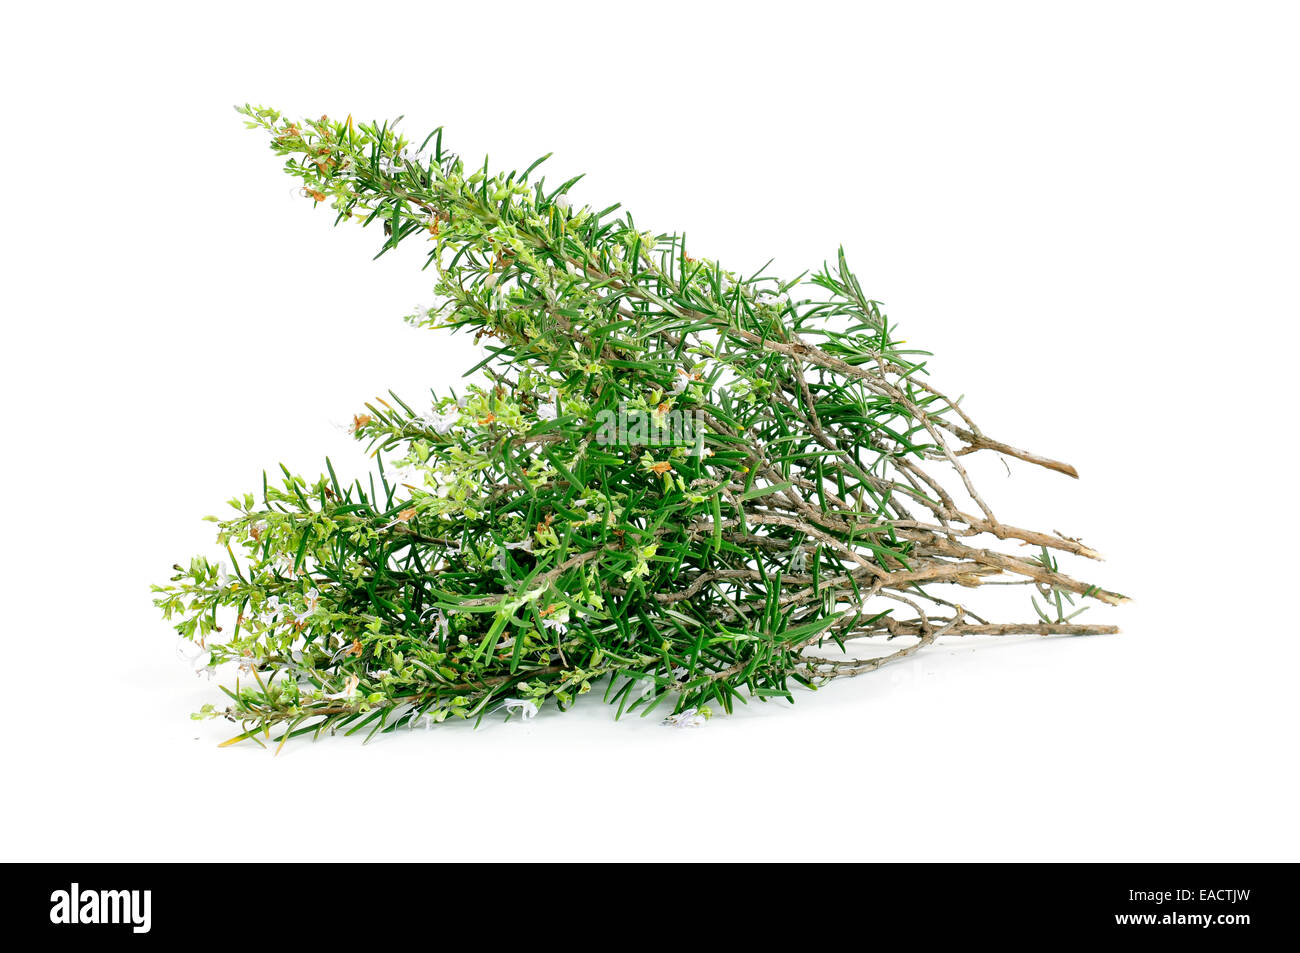 some sprigs of rosemary on a white background - Stock Image